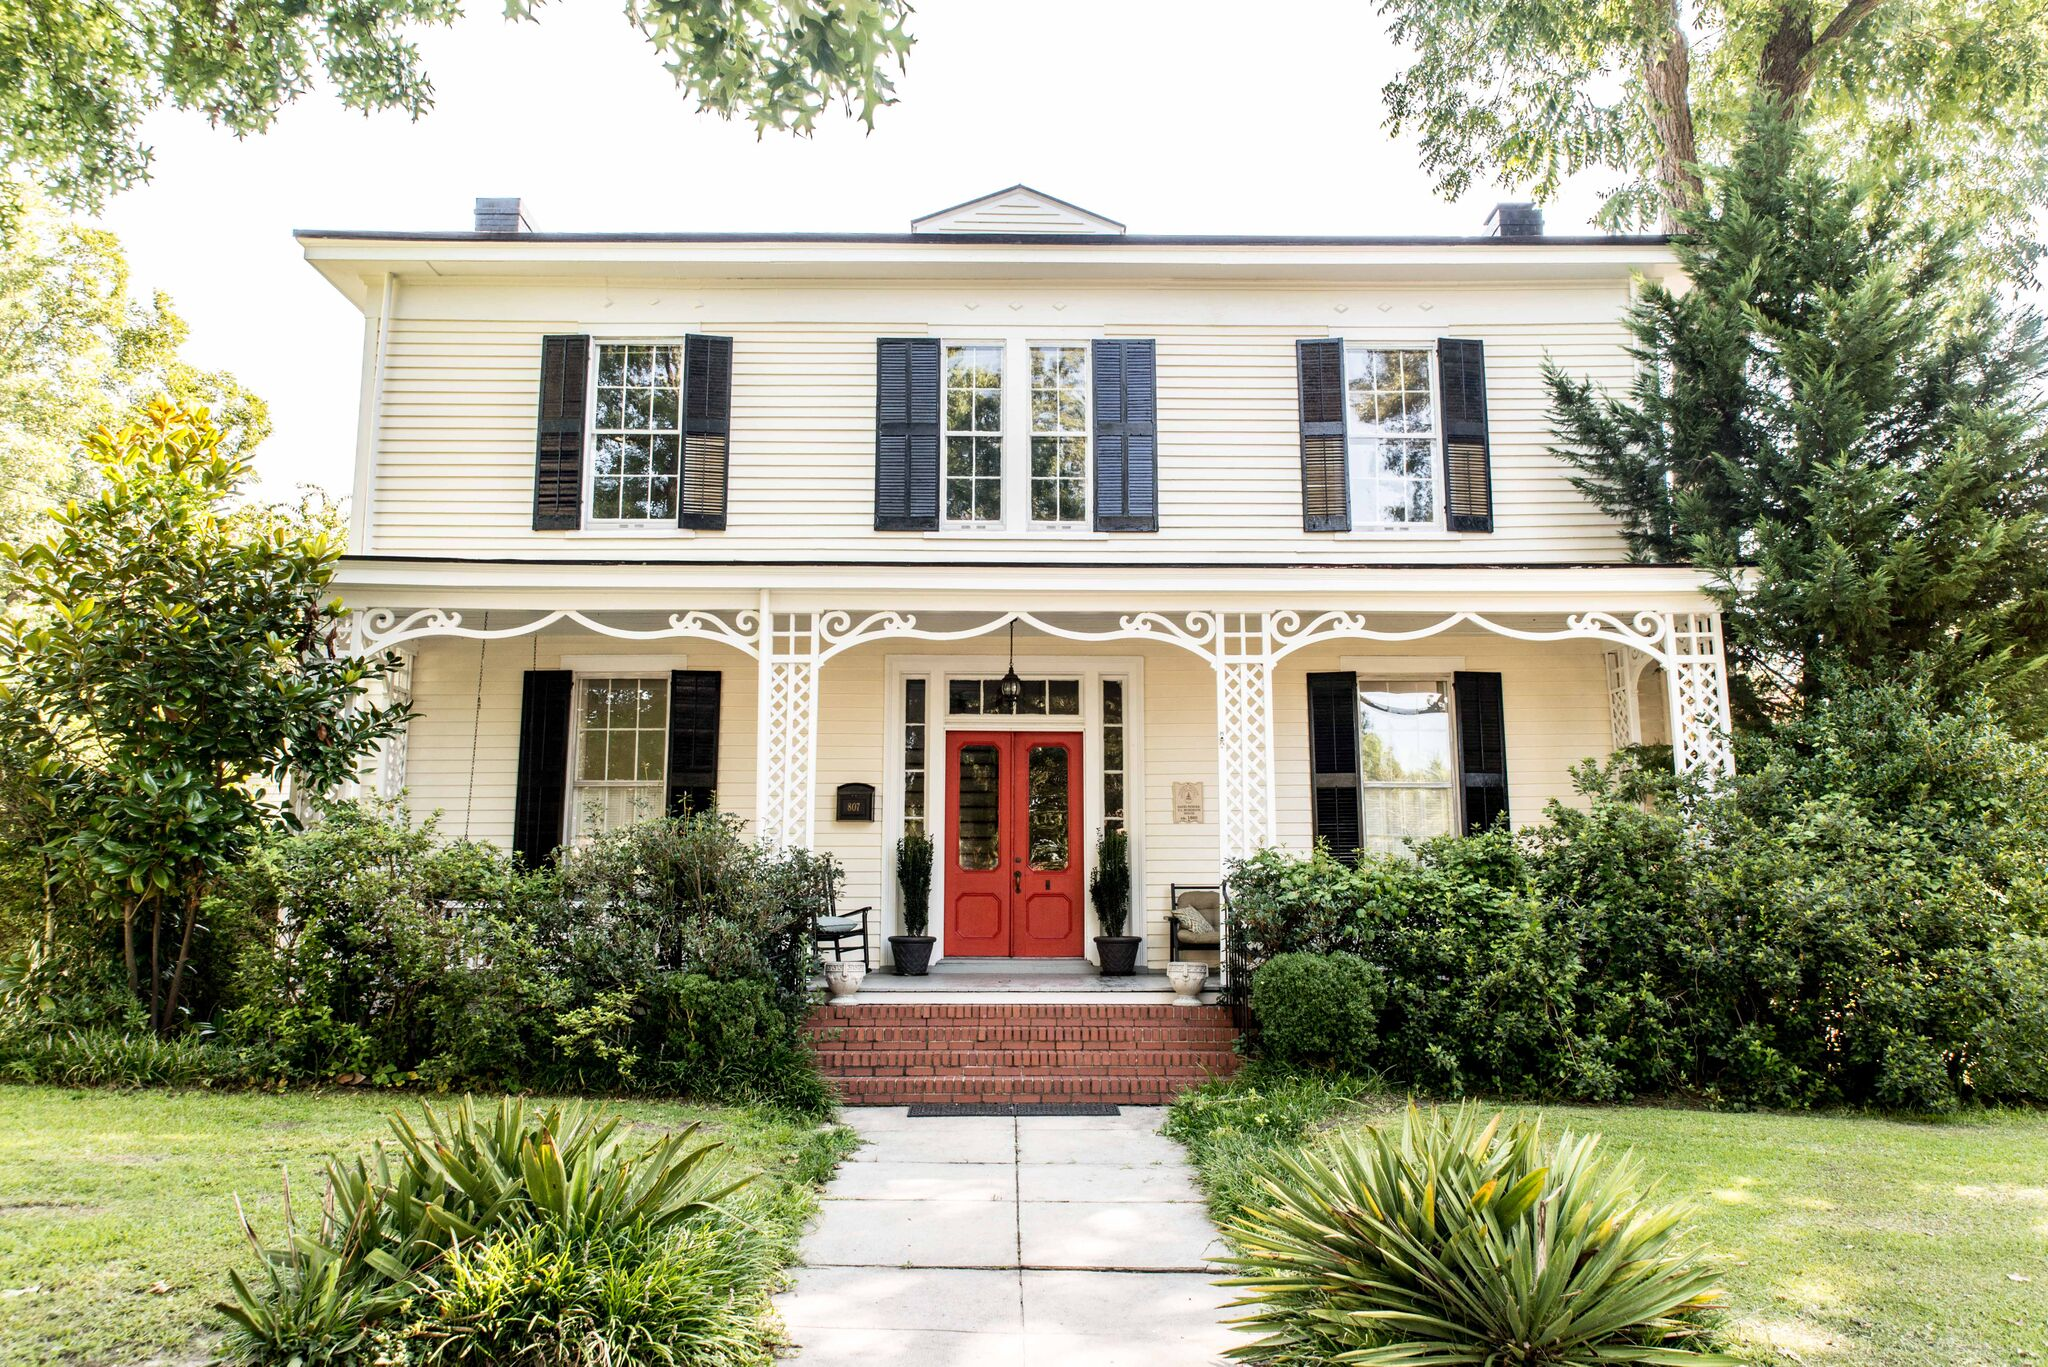 Single Family Home for Sale at Pender 807 N Main Street Tarboro, North Carolina, 27886 United StatesIn/Around: Chapel Hill, Cary, Durham, Raleigh, Rocky Mount, Greenville